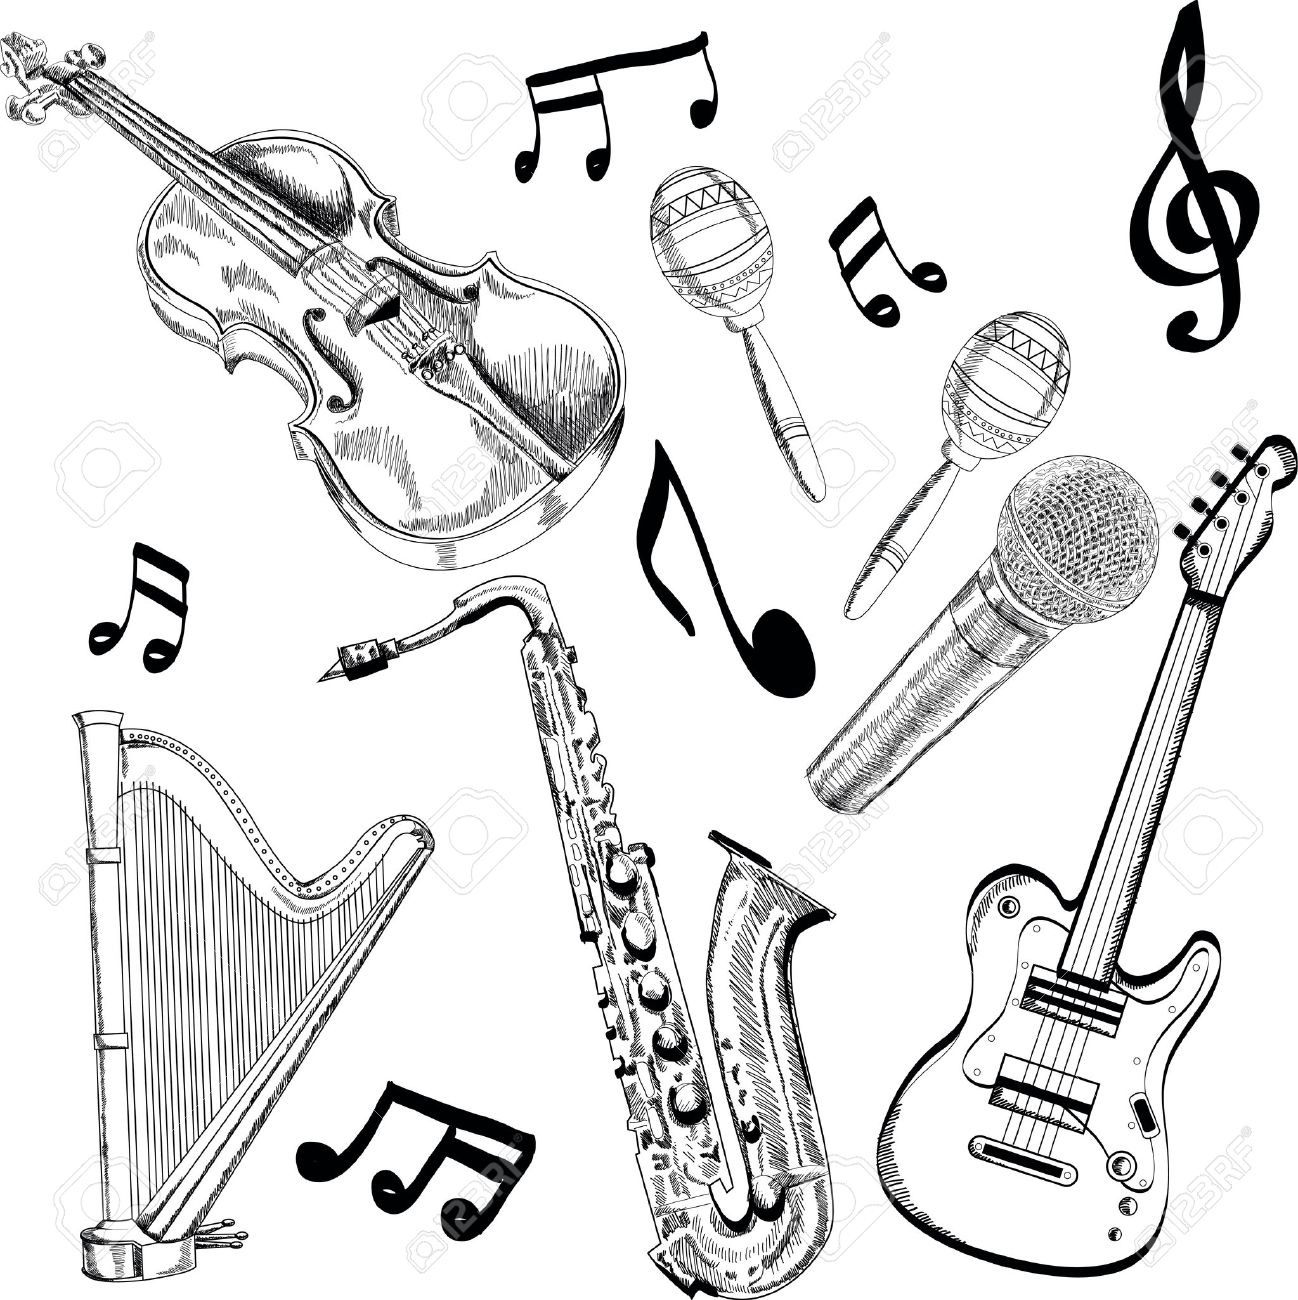 sketches of musical instruments black sketches of musical instruments on white background of instruments musical sketches